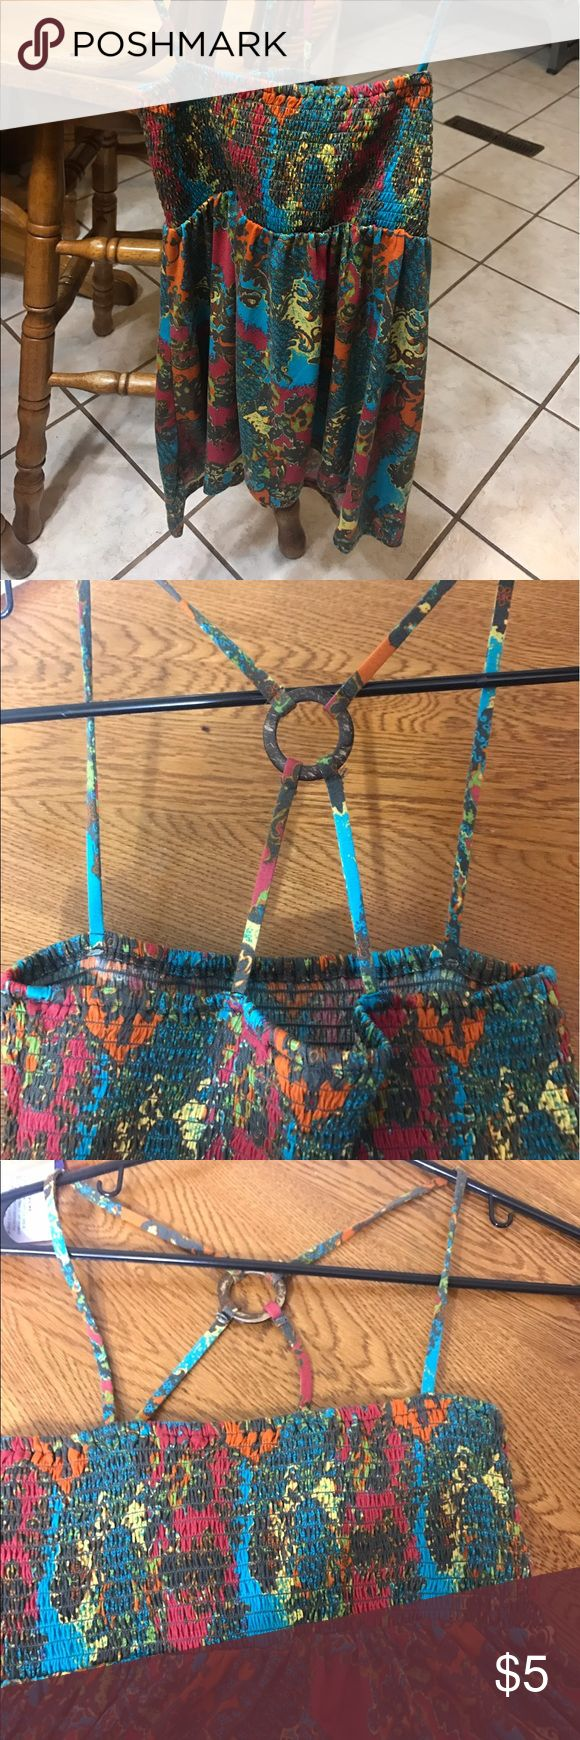 Weaver Strappy Top Weaver Multi-colored Strappy Top - Purchased from Gliks - Size Medium - Never Worn Tops Tank Tops